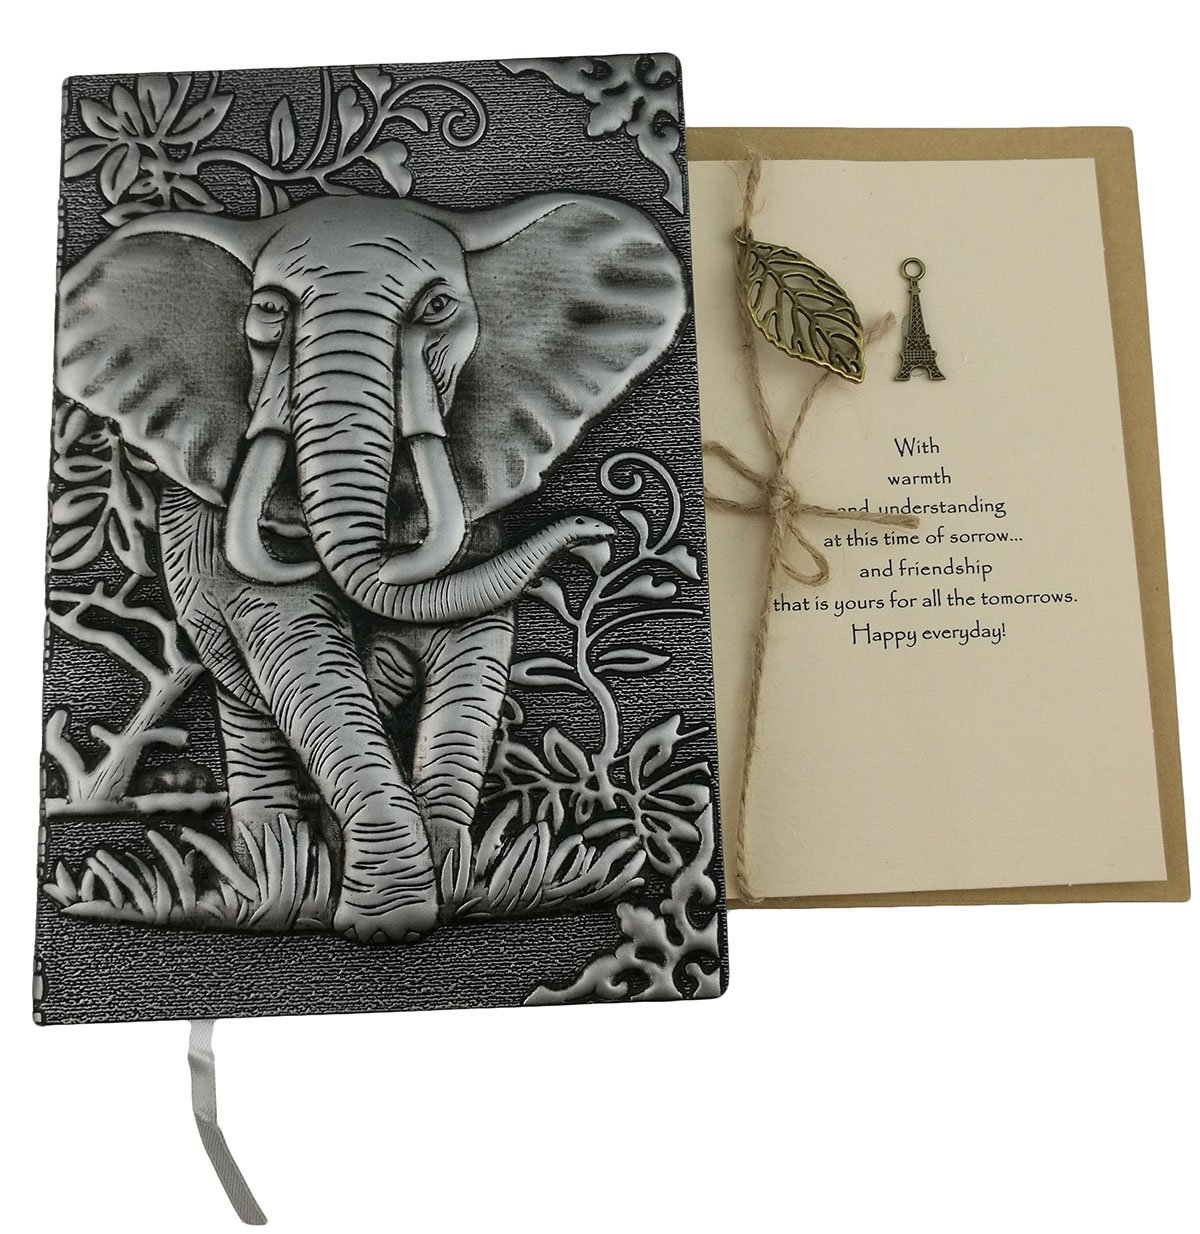 Personalized Handmade 3D Embossed Leather Retro Elephant Pattern Daily Planner Travel Journal Notebook With Greeting Card For Study Birthday Christmas Friends Family Dad Business Partner Gift (Grey)